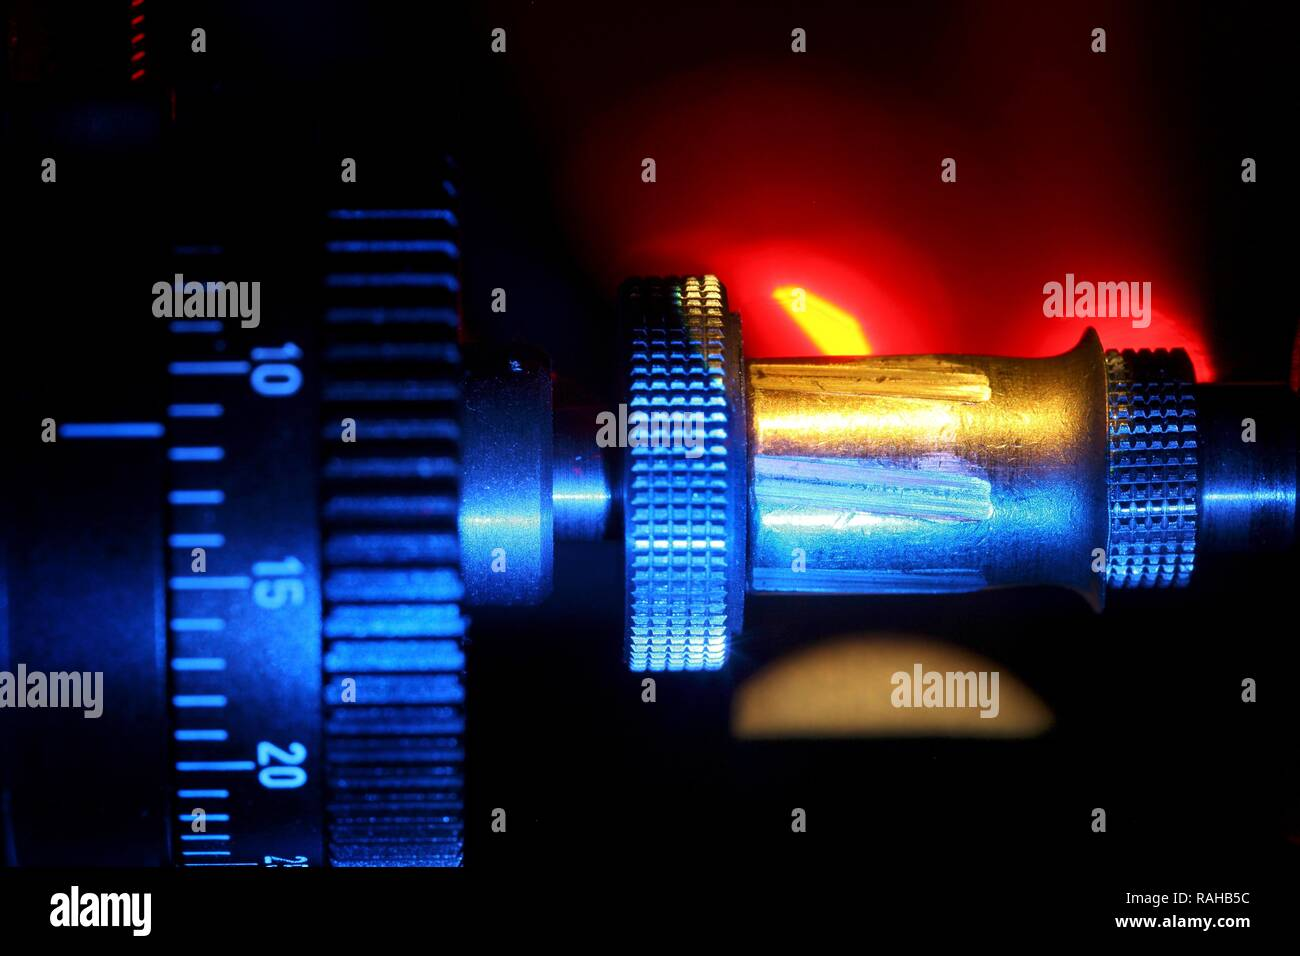 Kriminaltechnisches Institut, KTI, Forensic Science Institute, weapons department, stereo-microscopic study of projectiles - Stock Image